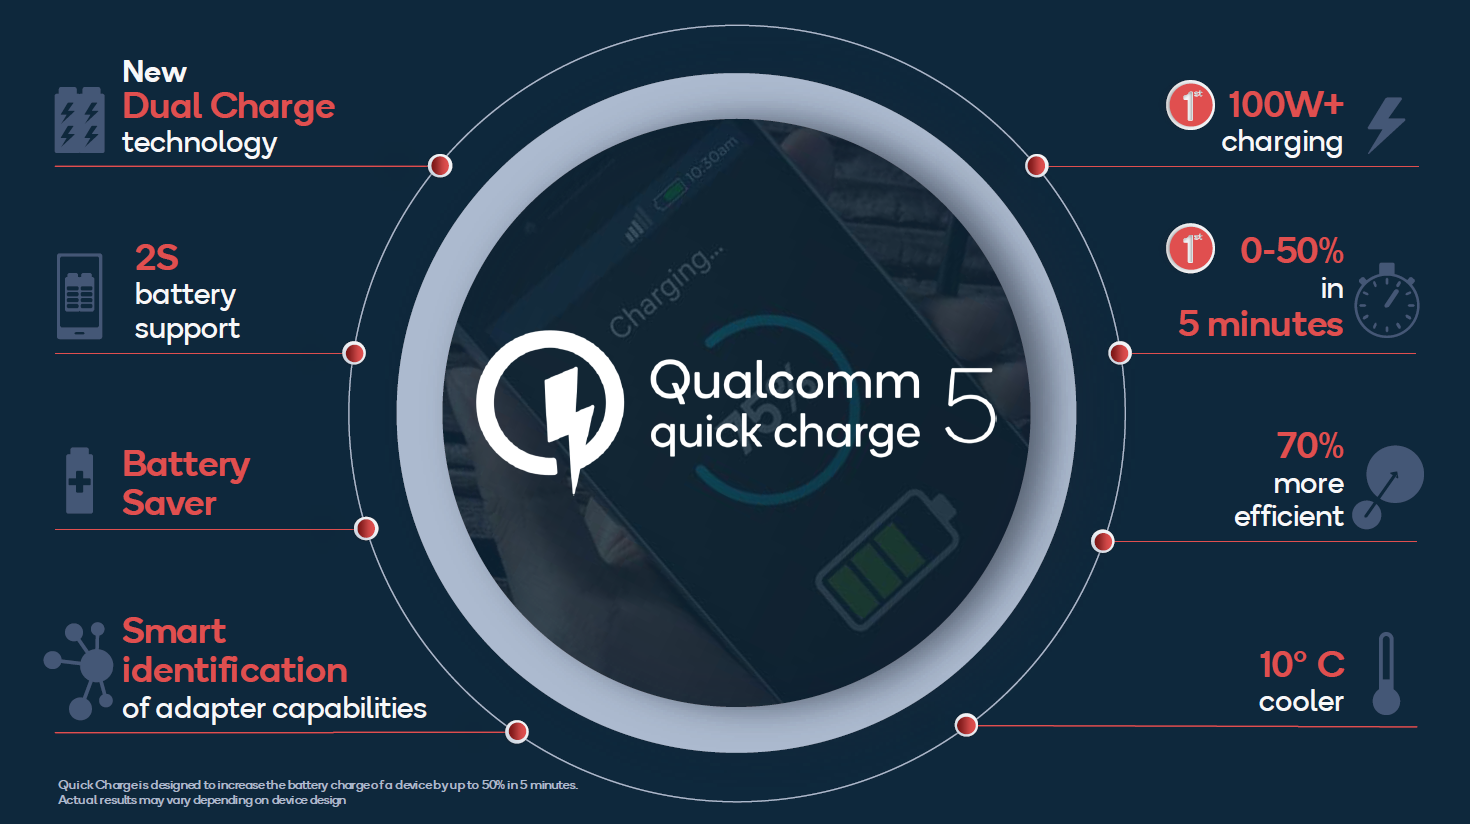 Qualcomm Quick Charge 5